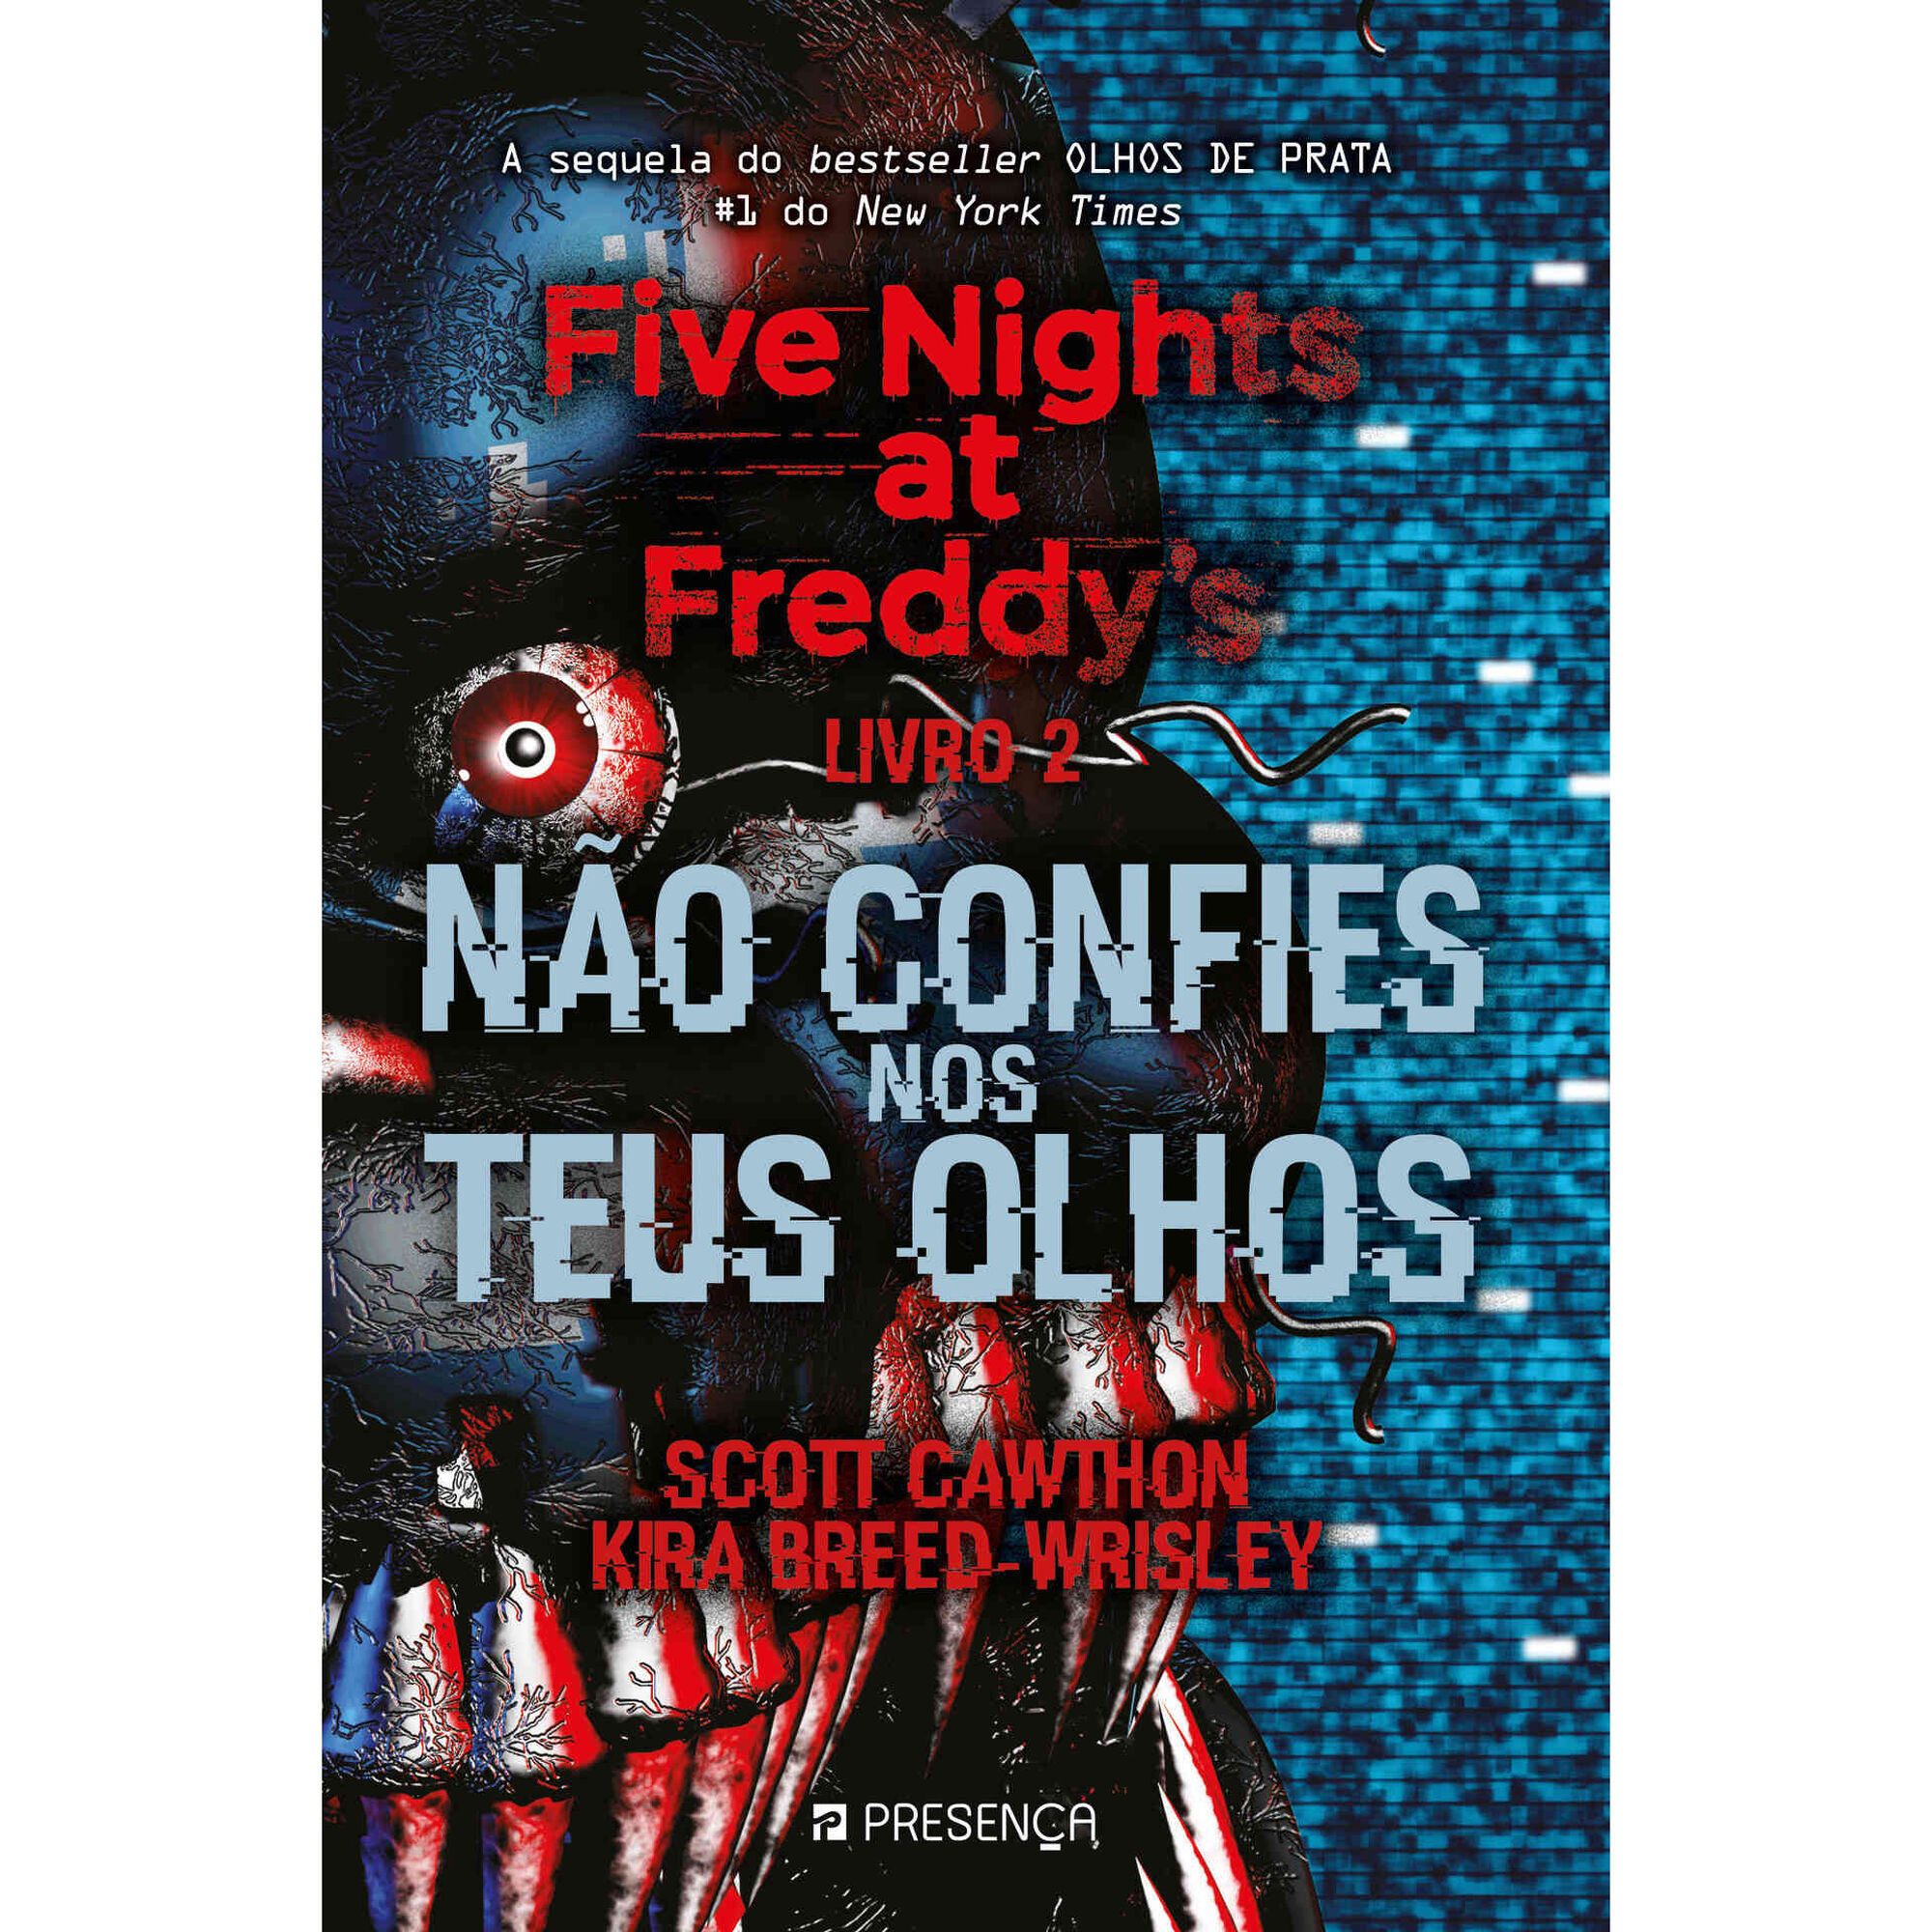 Five Nights at Freddy's 2 - Não Confies nos Teus Olhos